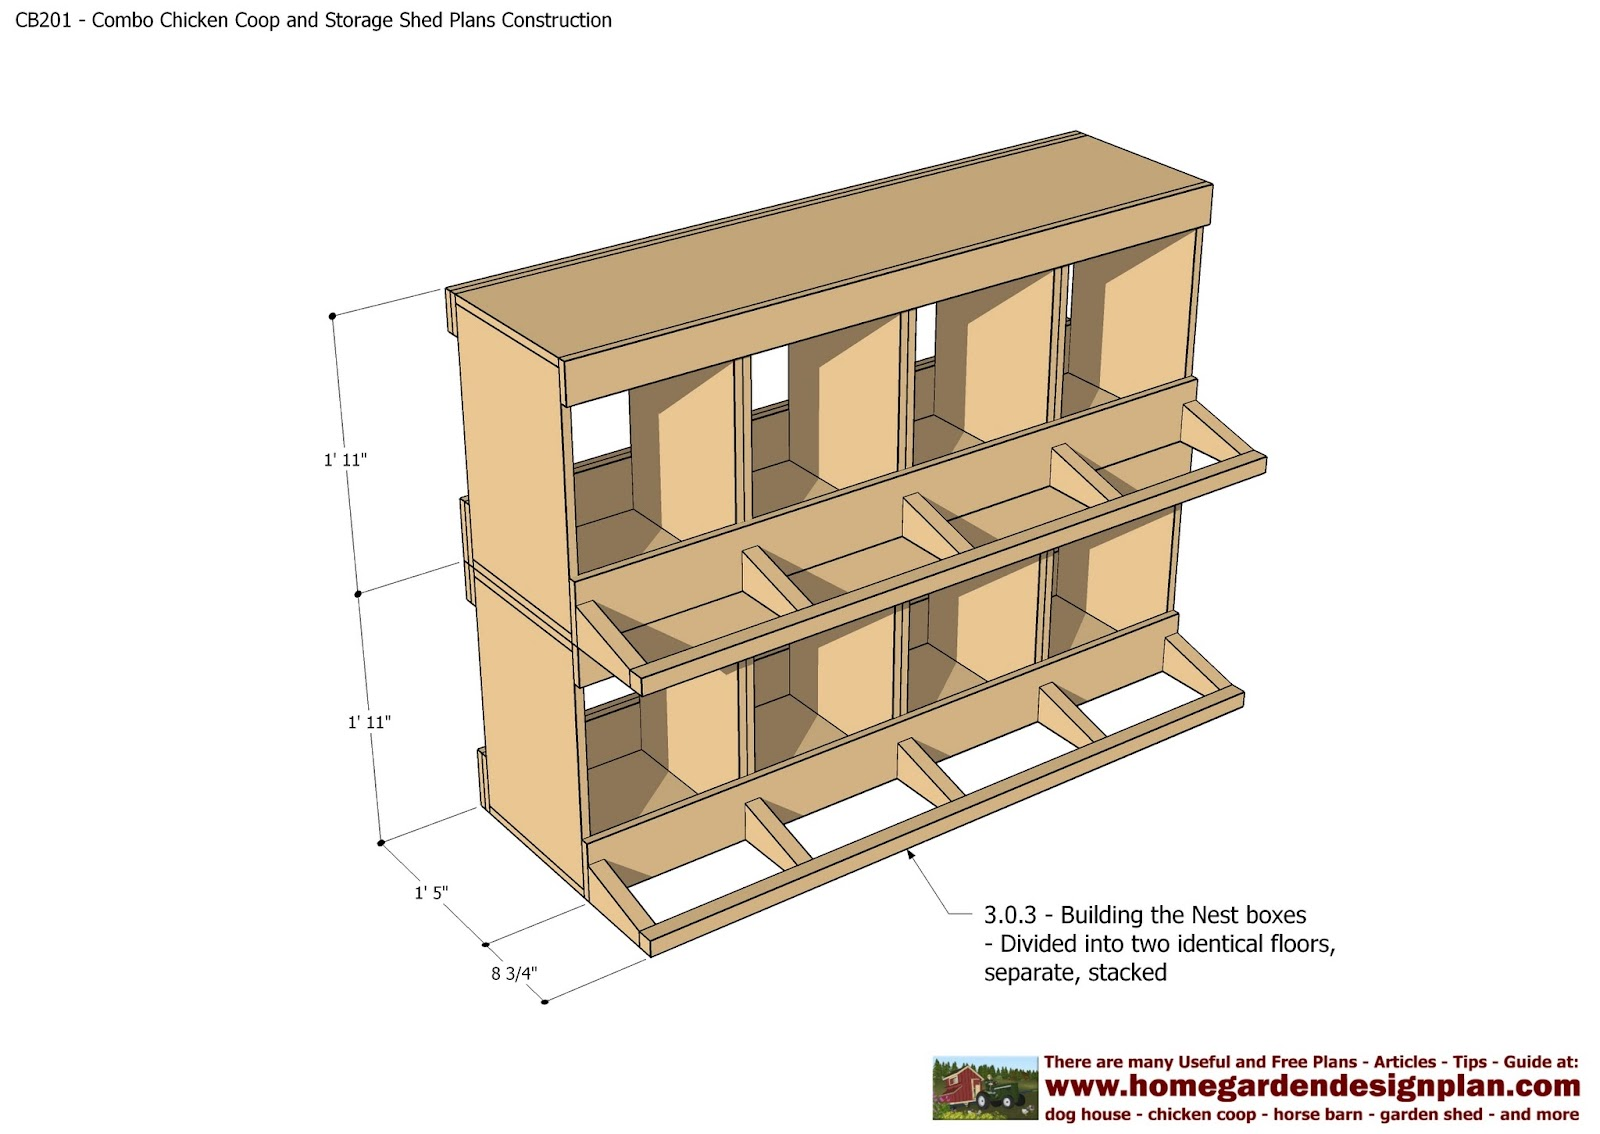 Home garden plans cb201 combo plans chicken coop for Plans chicken coop